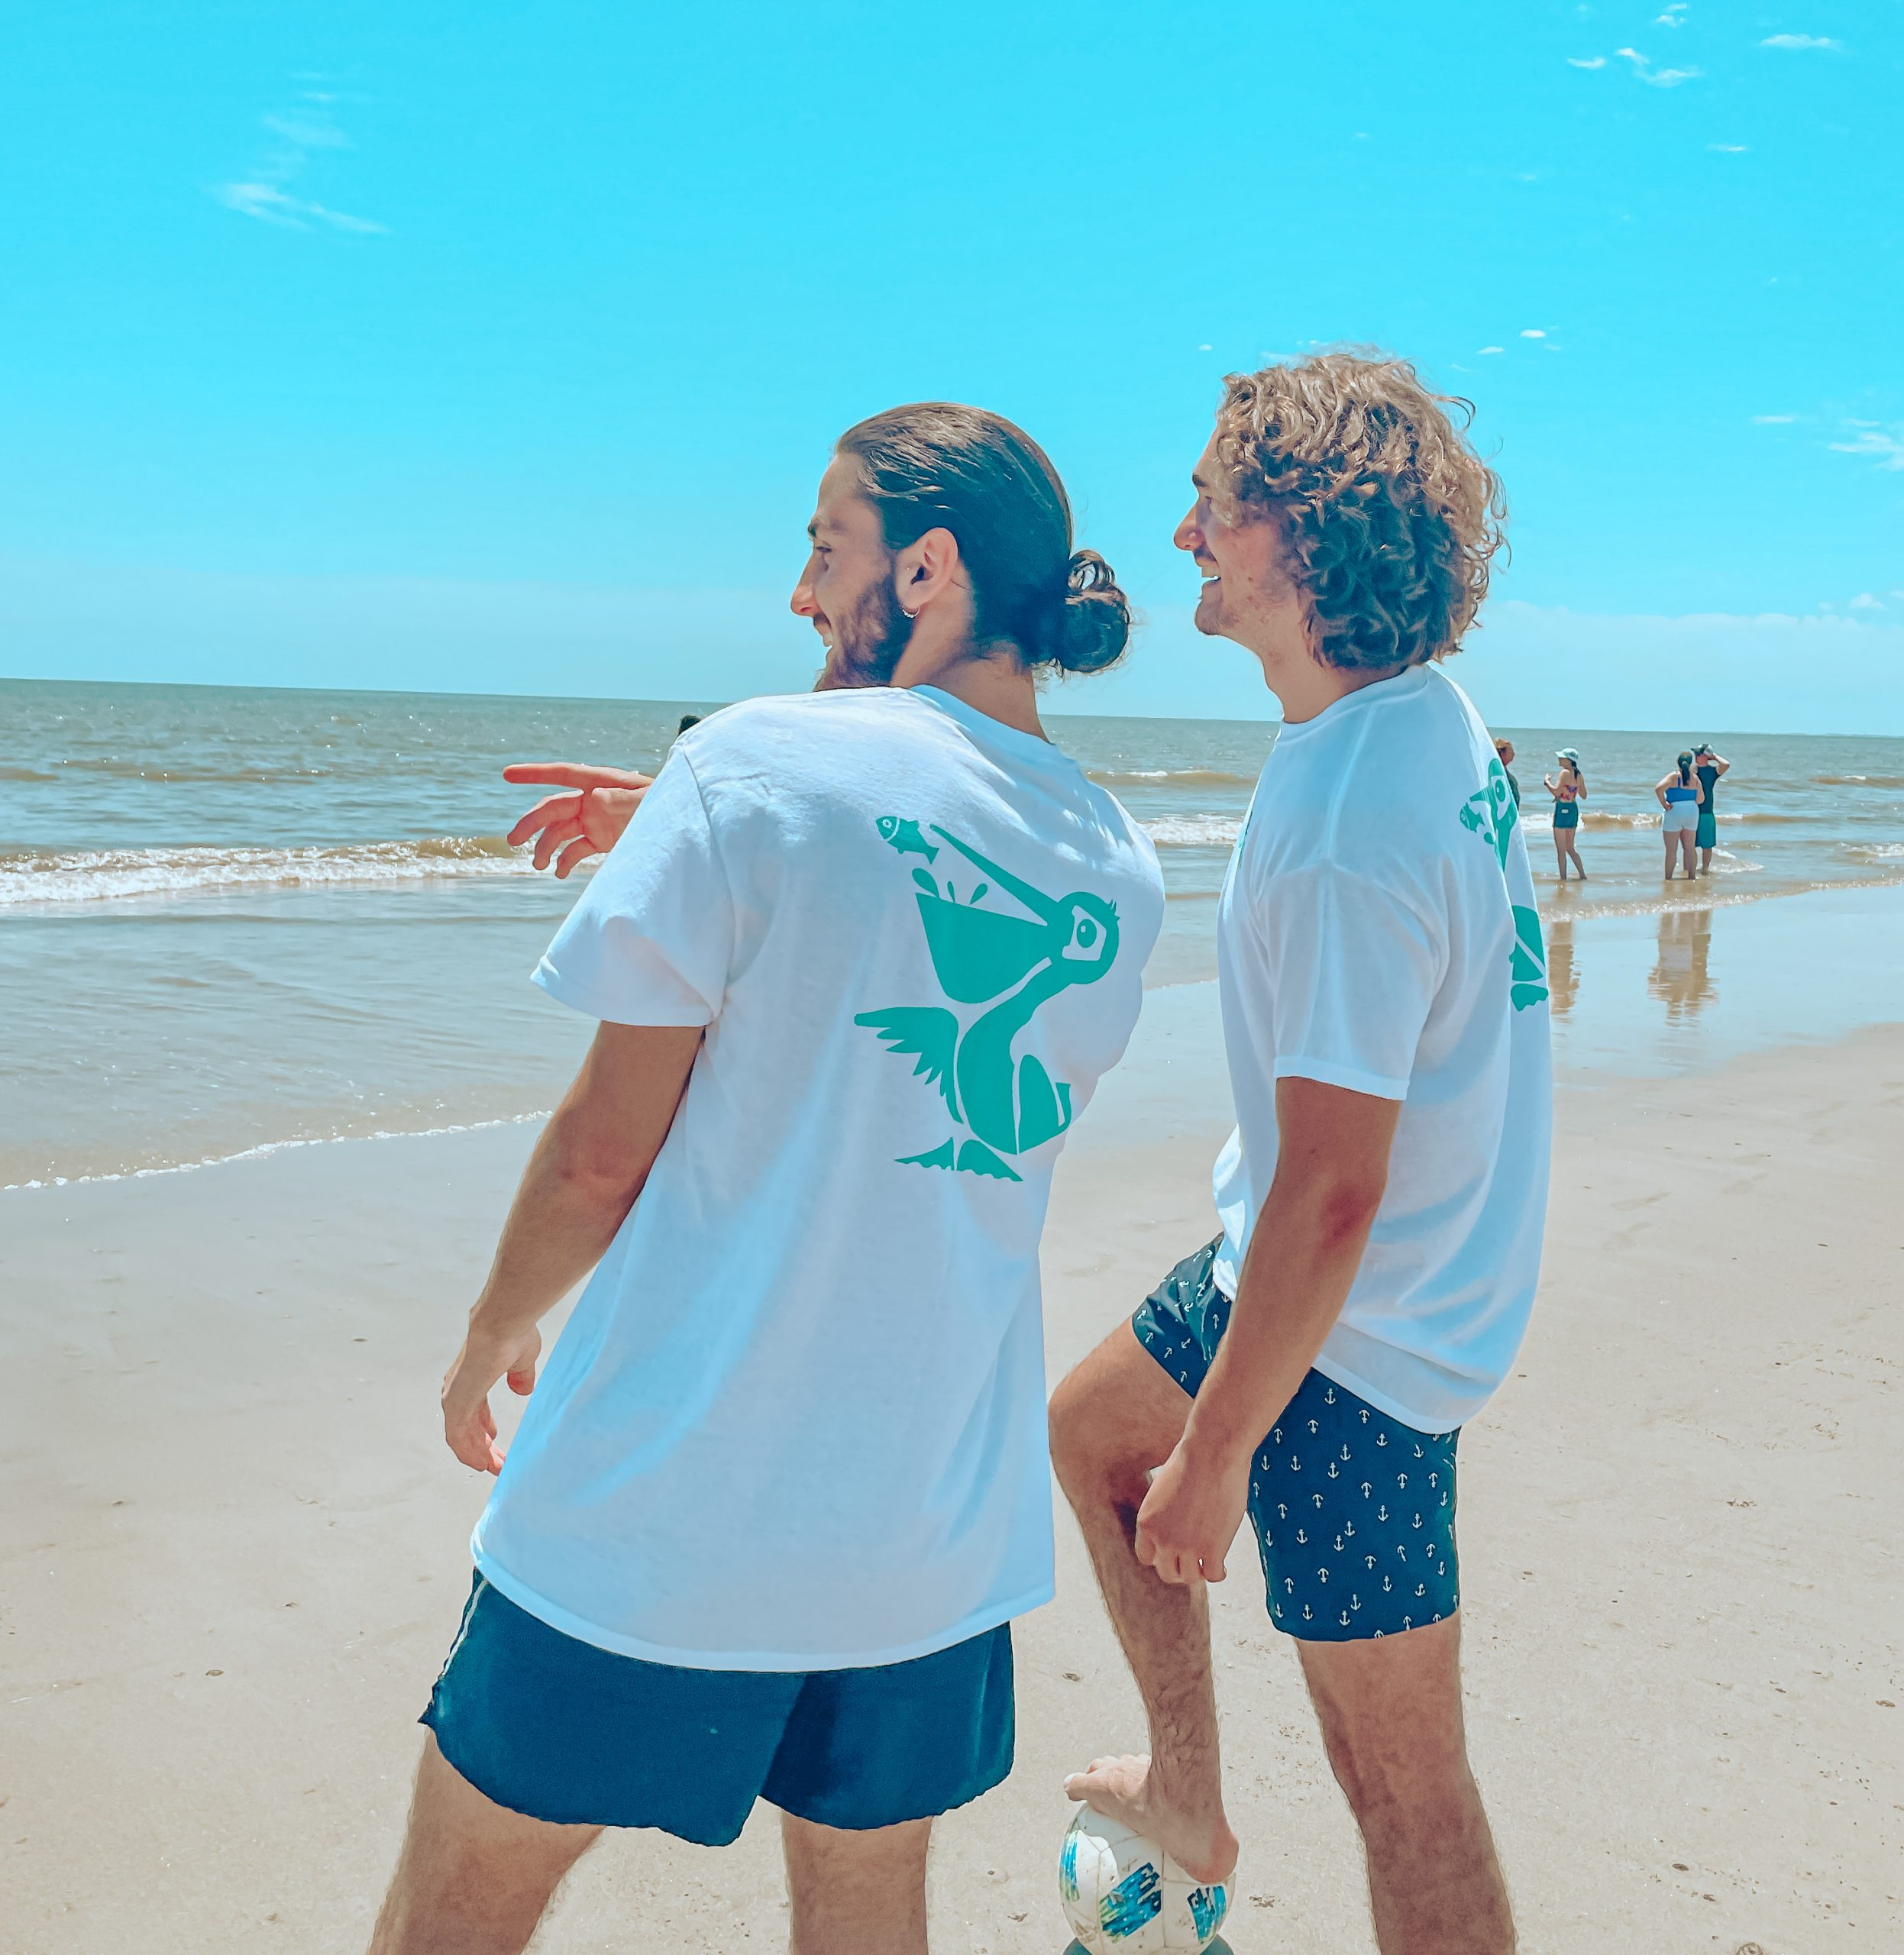 We appreciate you sporting our tees - HHI.